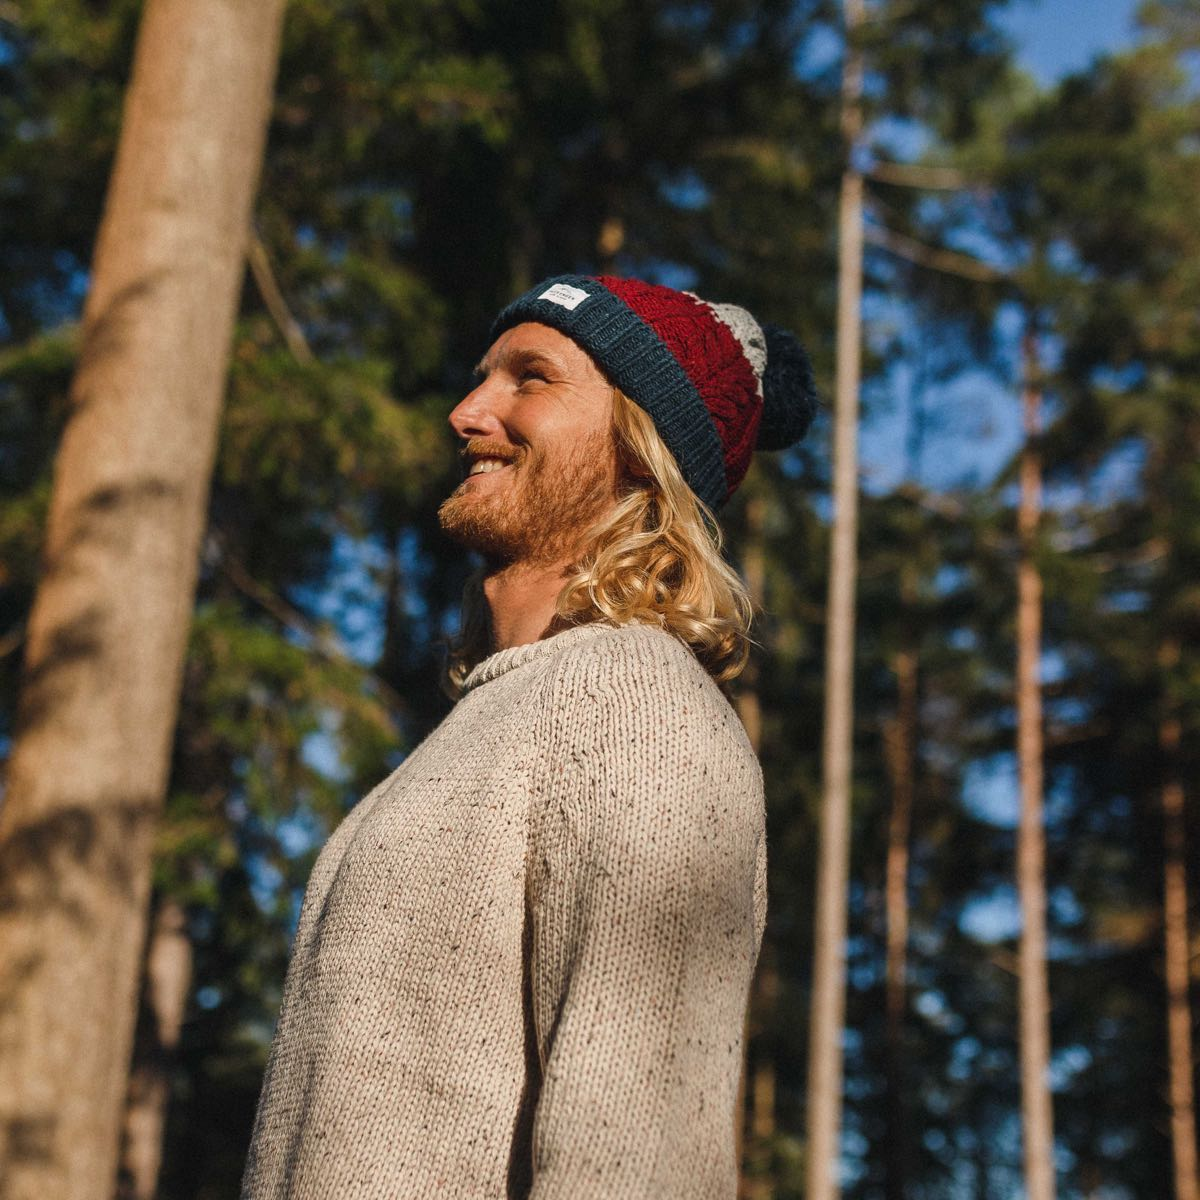 Stoke Bobble Hat - Navy, Light Grey, Burgundy image 3